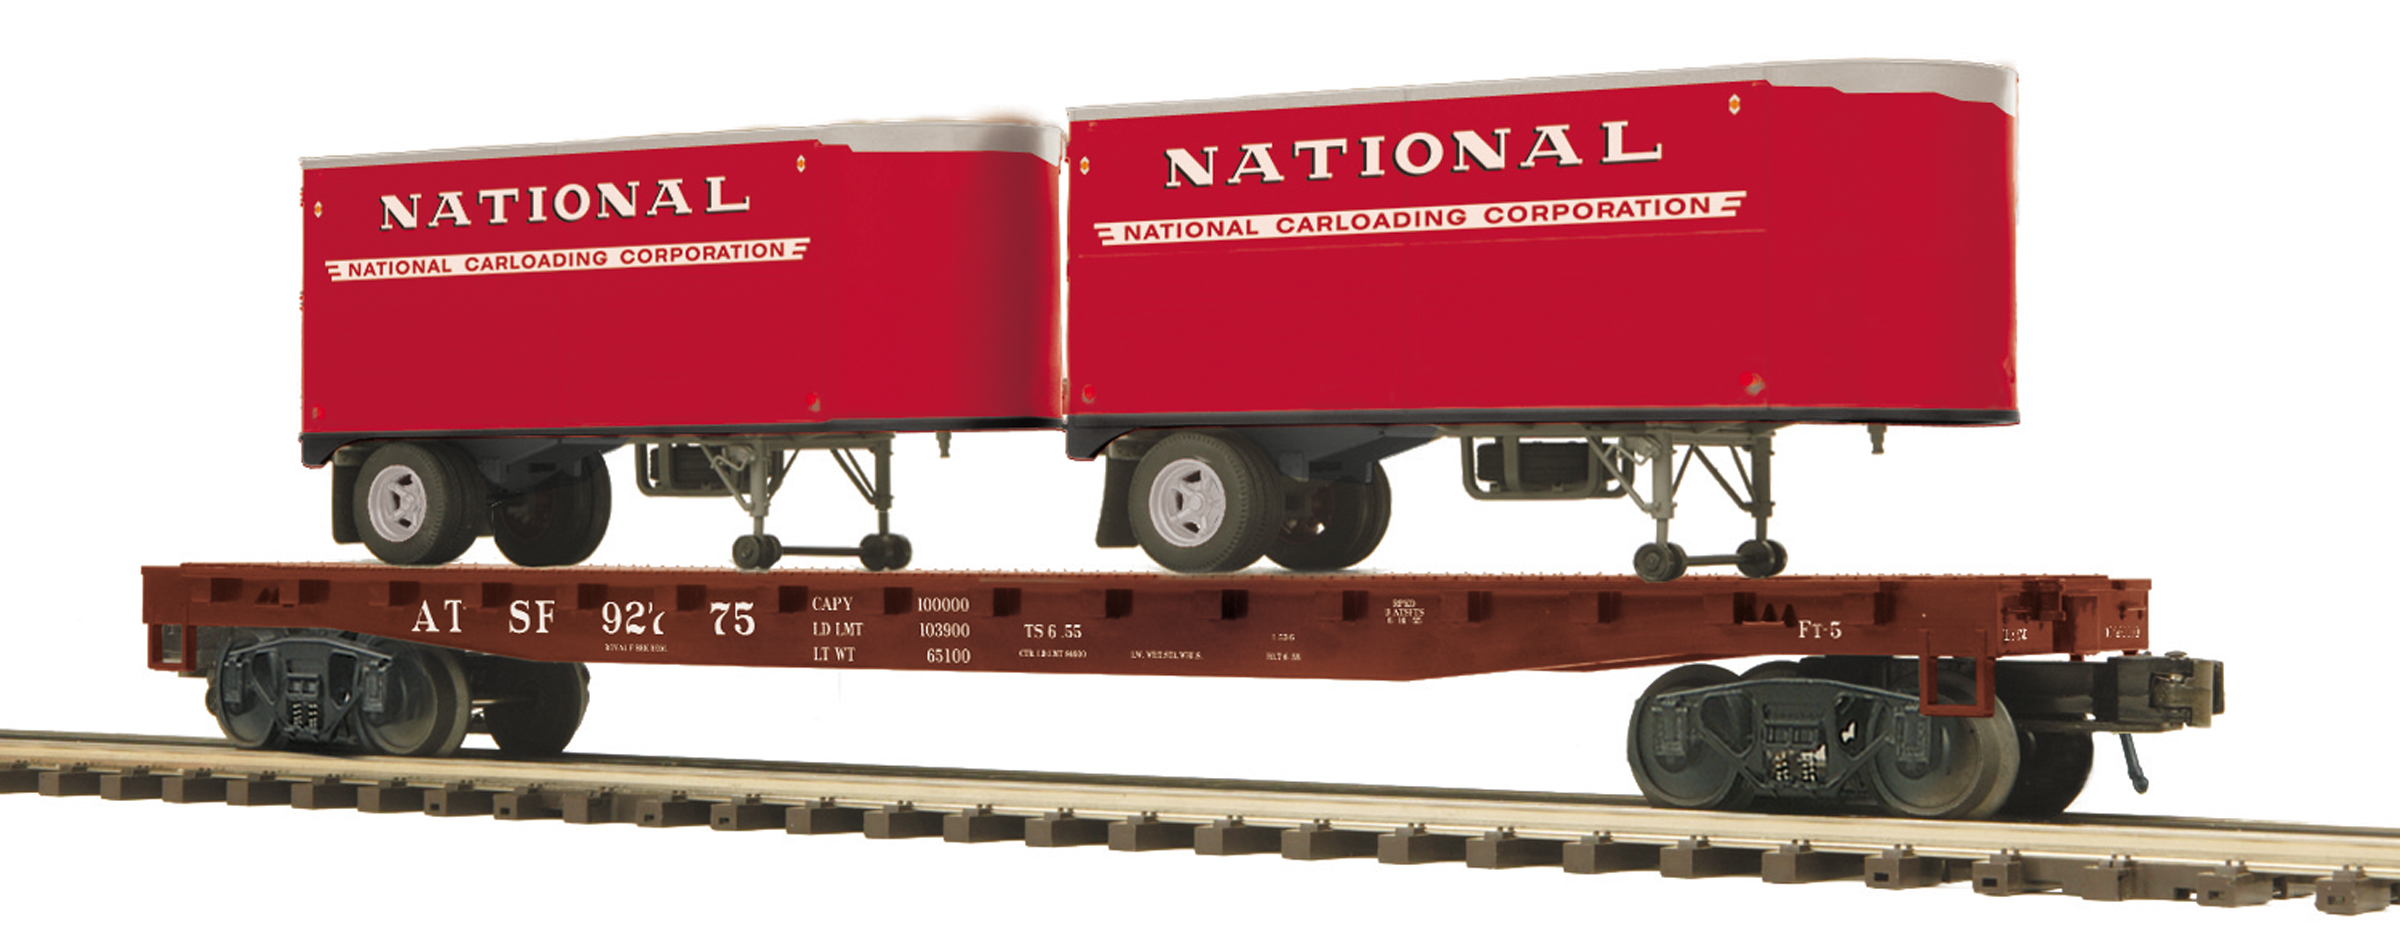 Santa Fe (National Trailer) Flat Car w/(2) PUP Trailers image